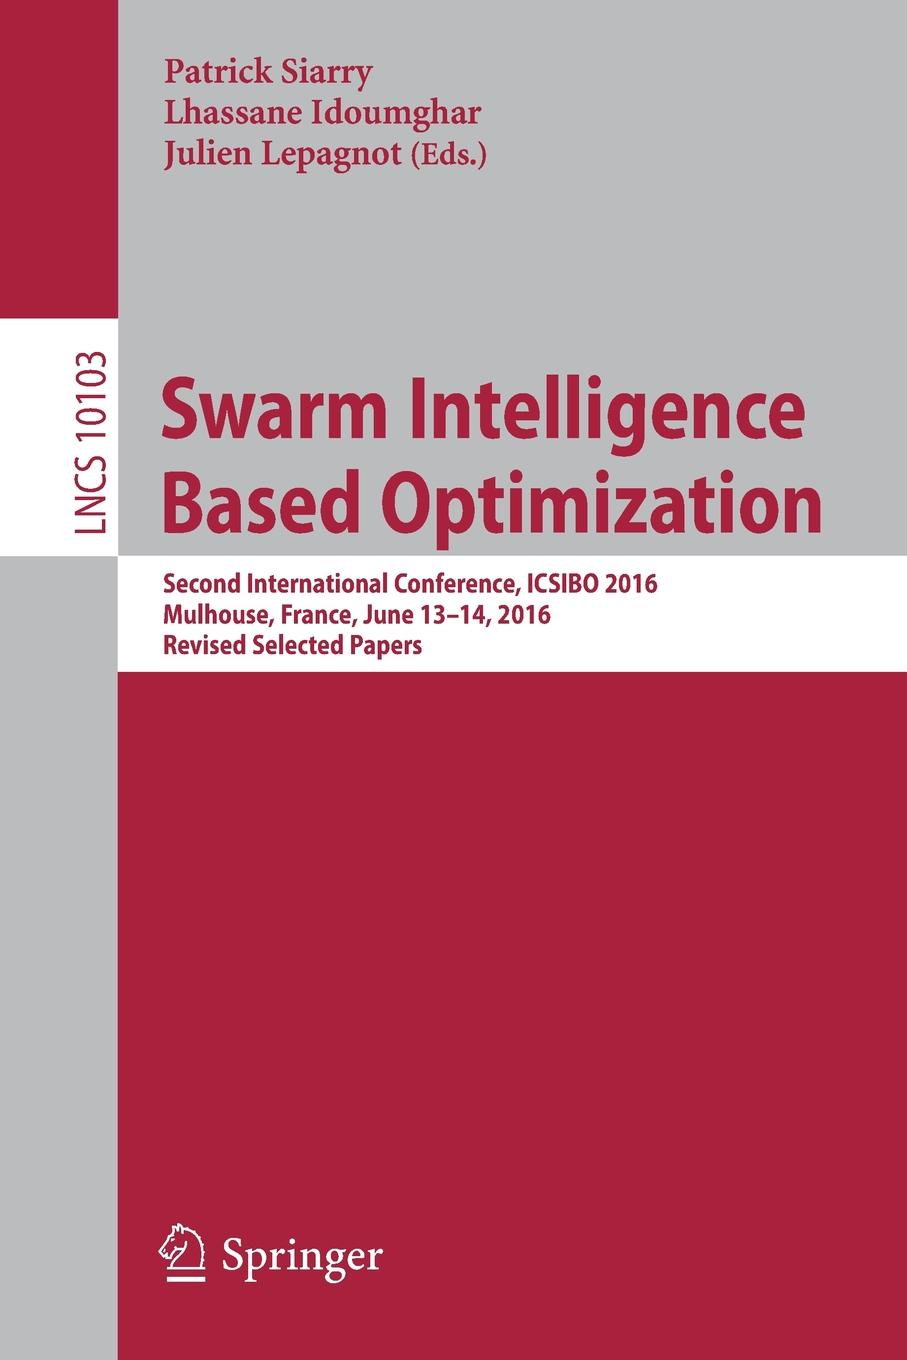 Swarm Intelligence Based Optimization. Second International Conference, ICSIBO 2016, Mulhouse, France, June 13-14, 2016, Revised Selected Papers application of particle swarm optimization